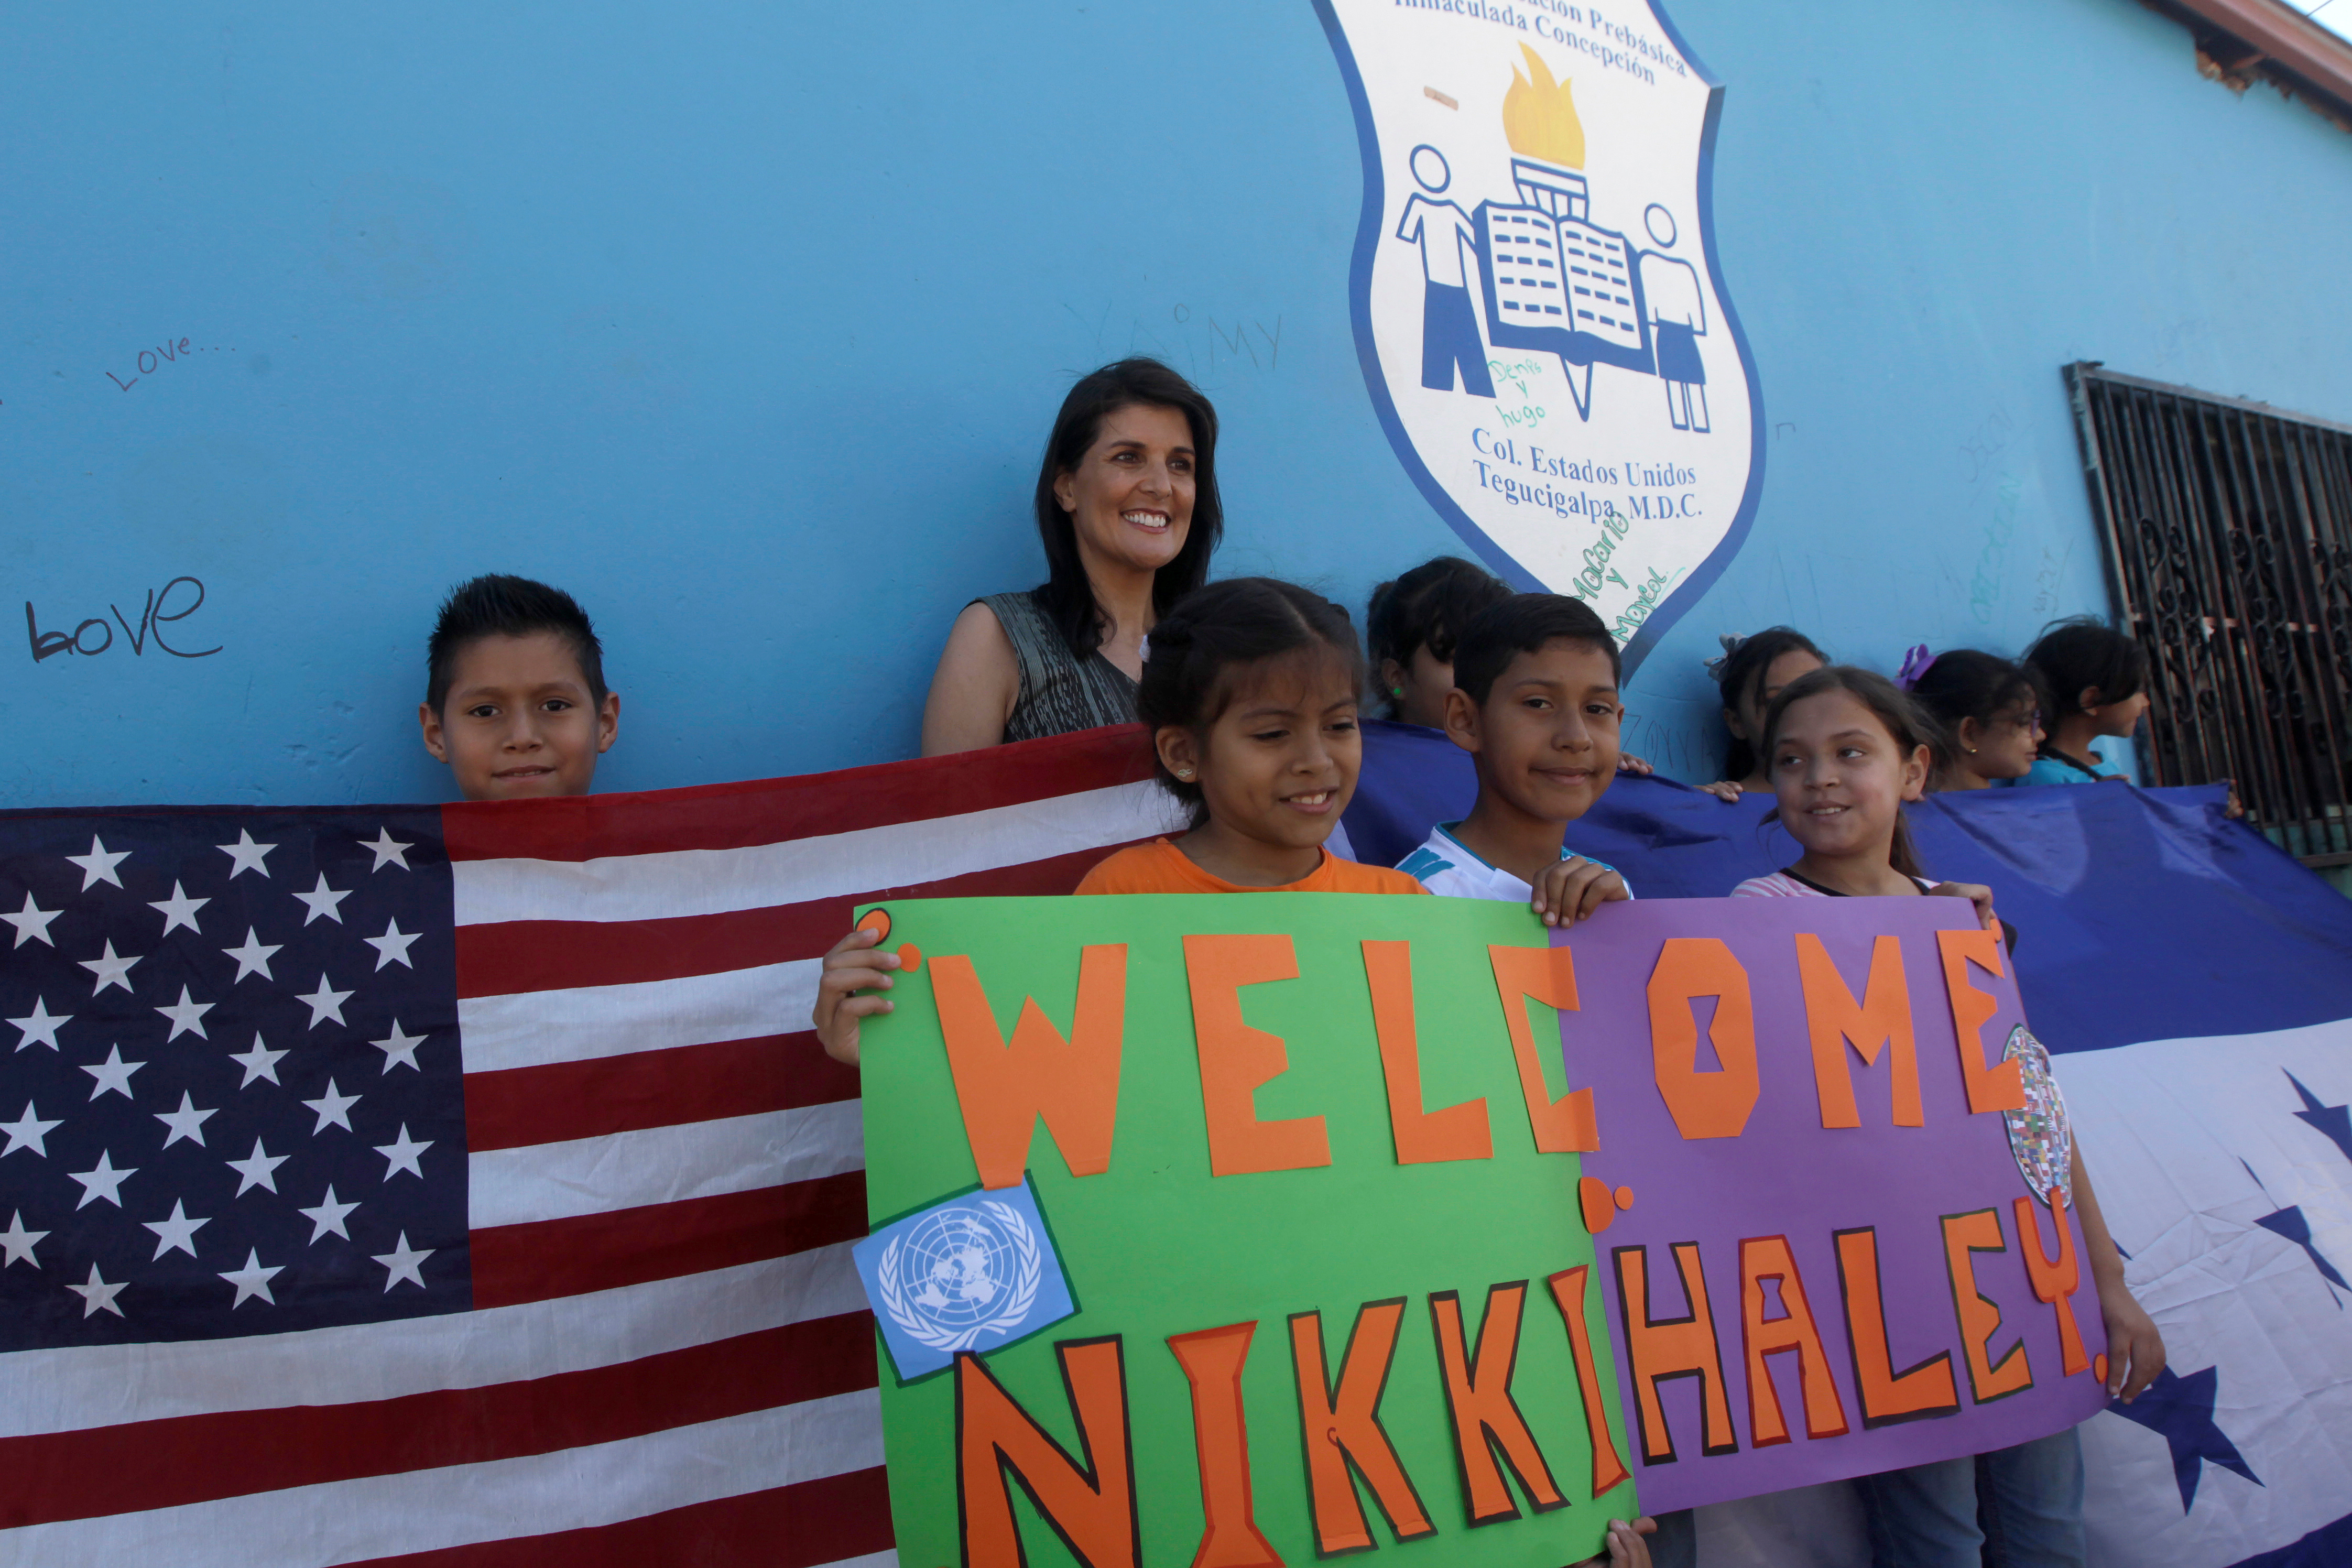 U.S. Ambassador to the United Nations Nikki Haley poses for a picture with children at a school in Tegucigalpa, Honduras Feb. 27, 2018.